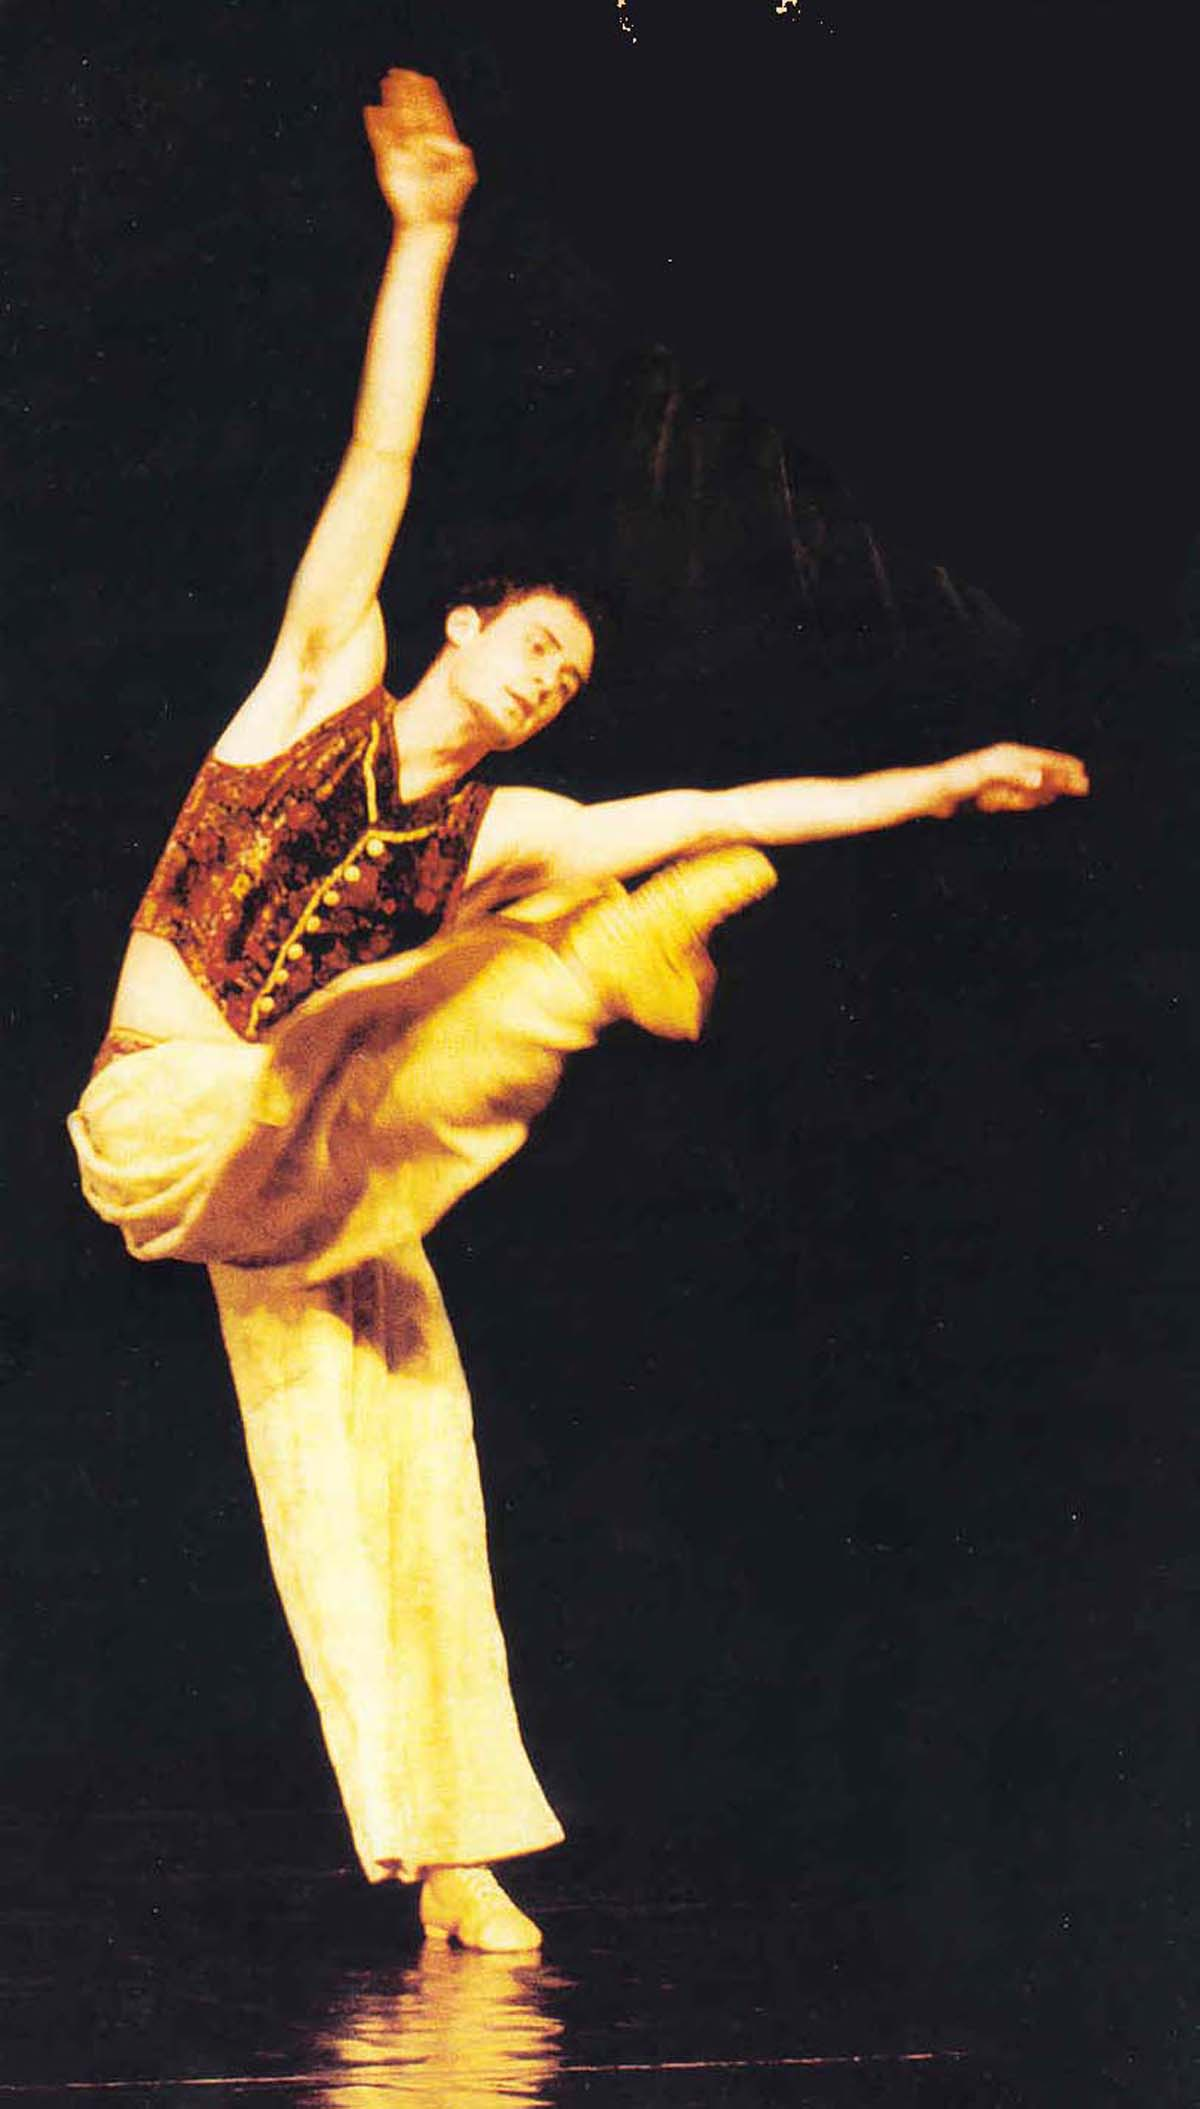 The King dances - Purim: The Casting of Fate Gyor National Ballet of Hungary